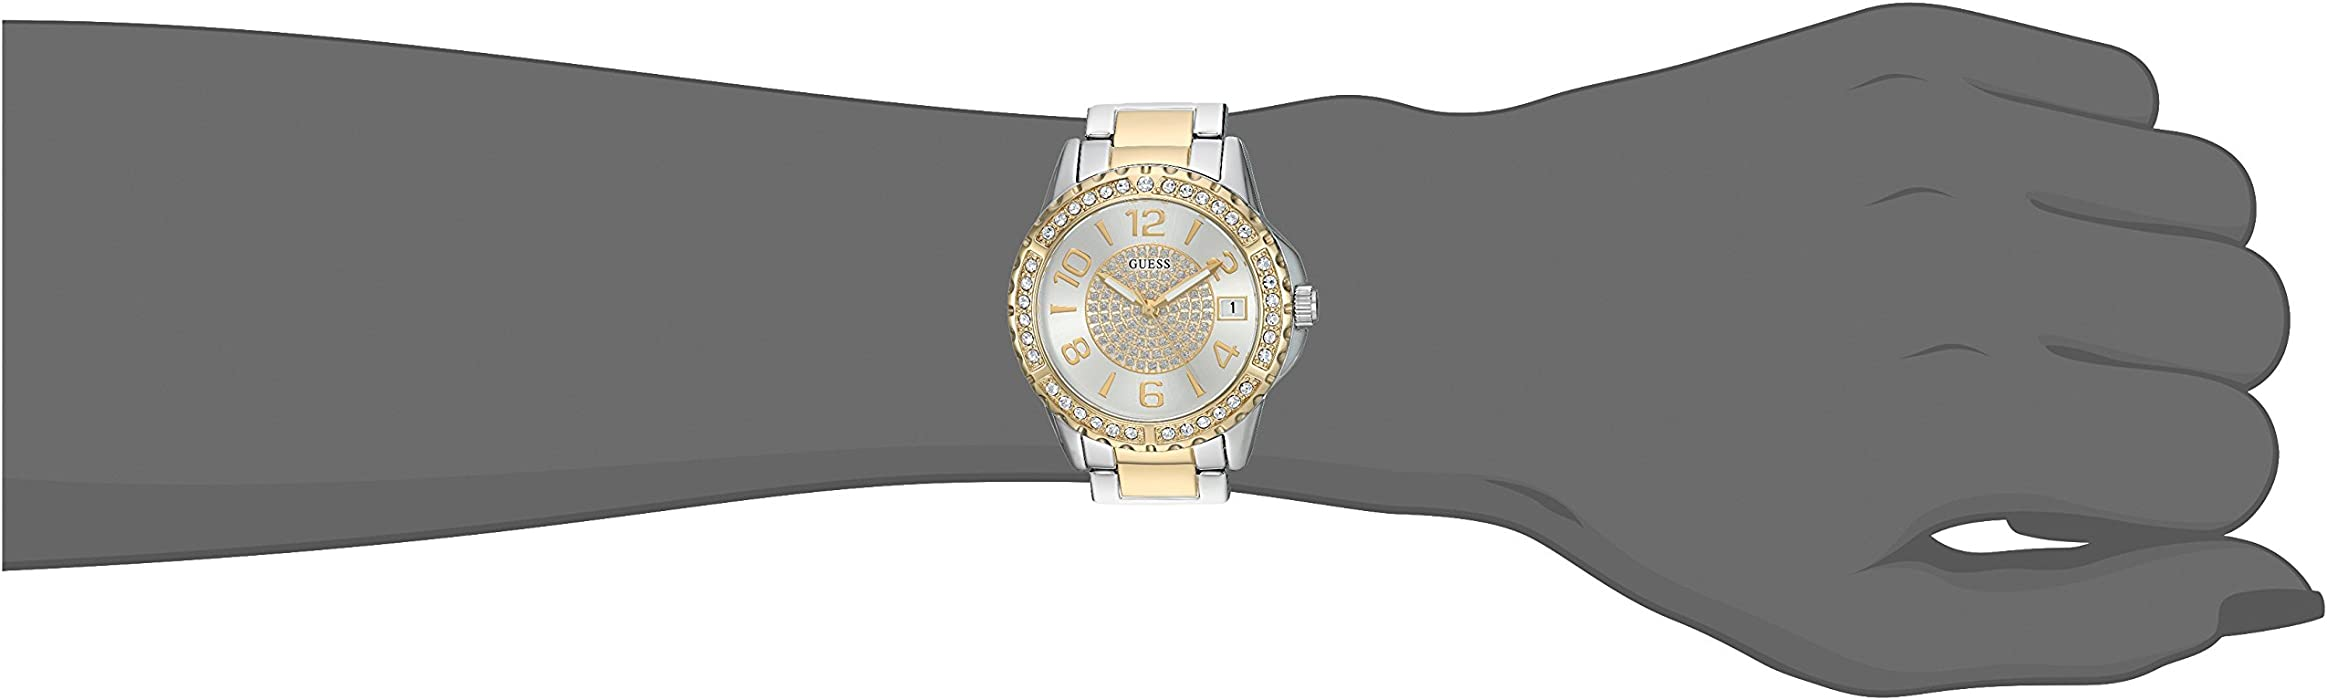 Womens Stainless Steel Crystal Casual Watch